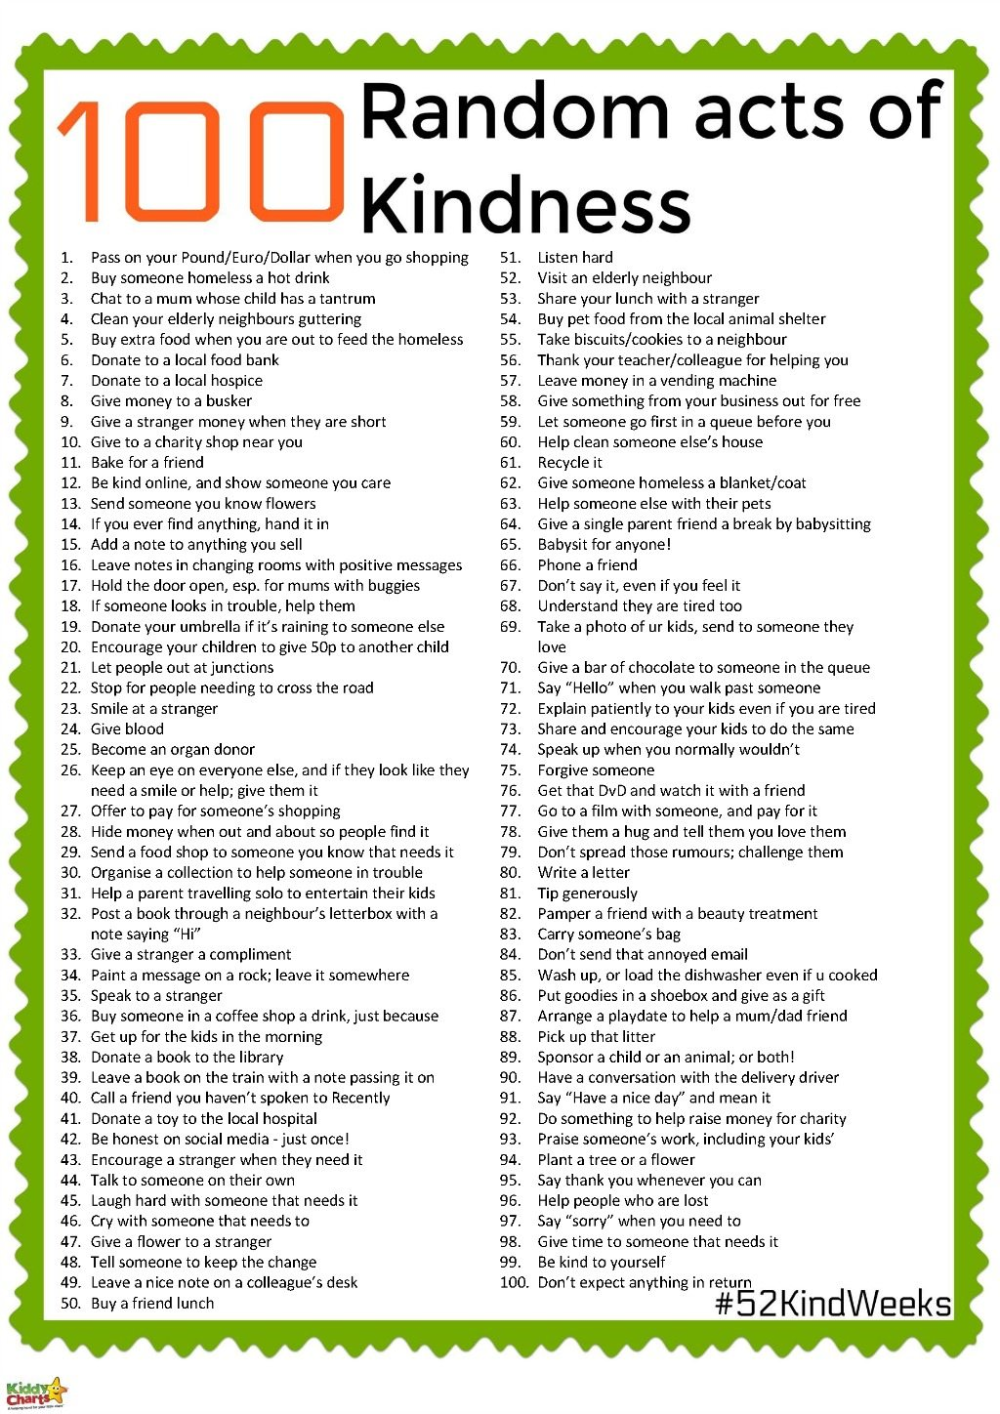 Check out these 100 wonderful random acts of kindness for #52kindweeks #365motsbocalidees